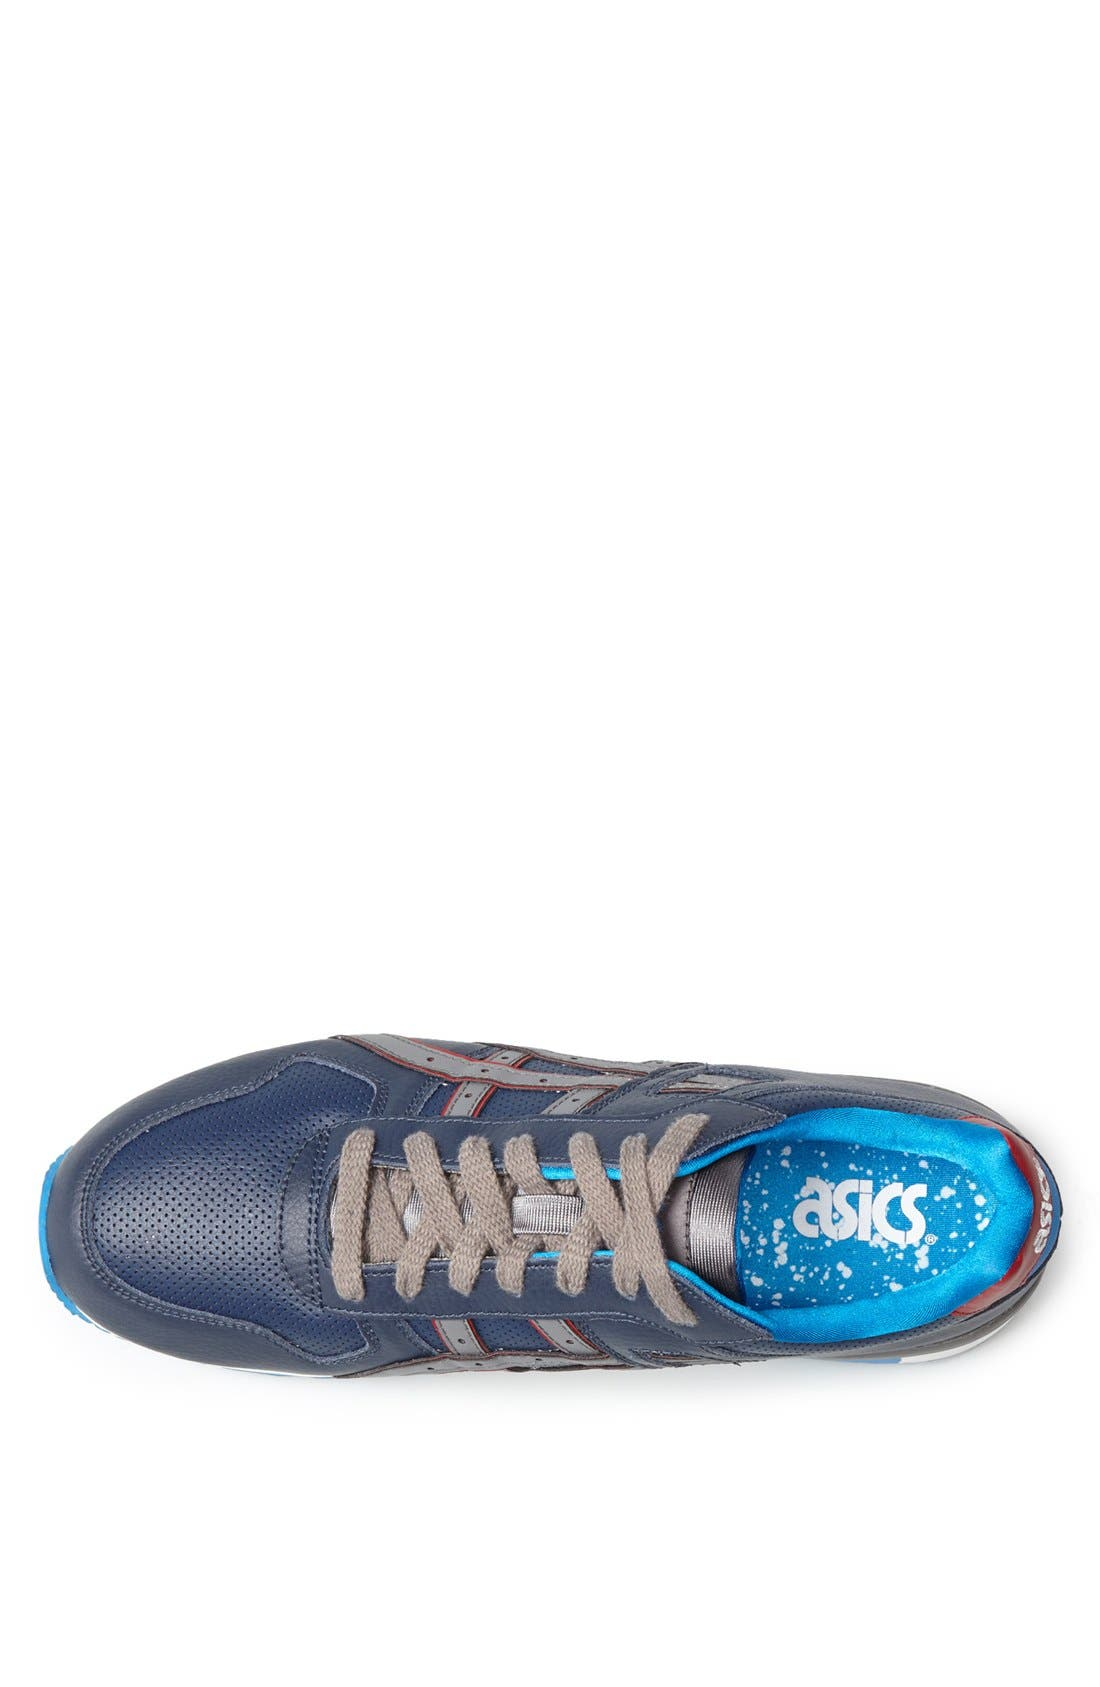 Alternate Image 3  - ASICS® 'GT-II™' Sneaker (Men)